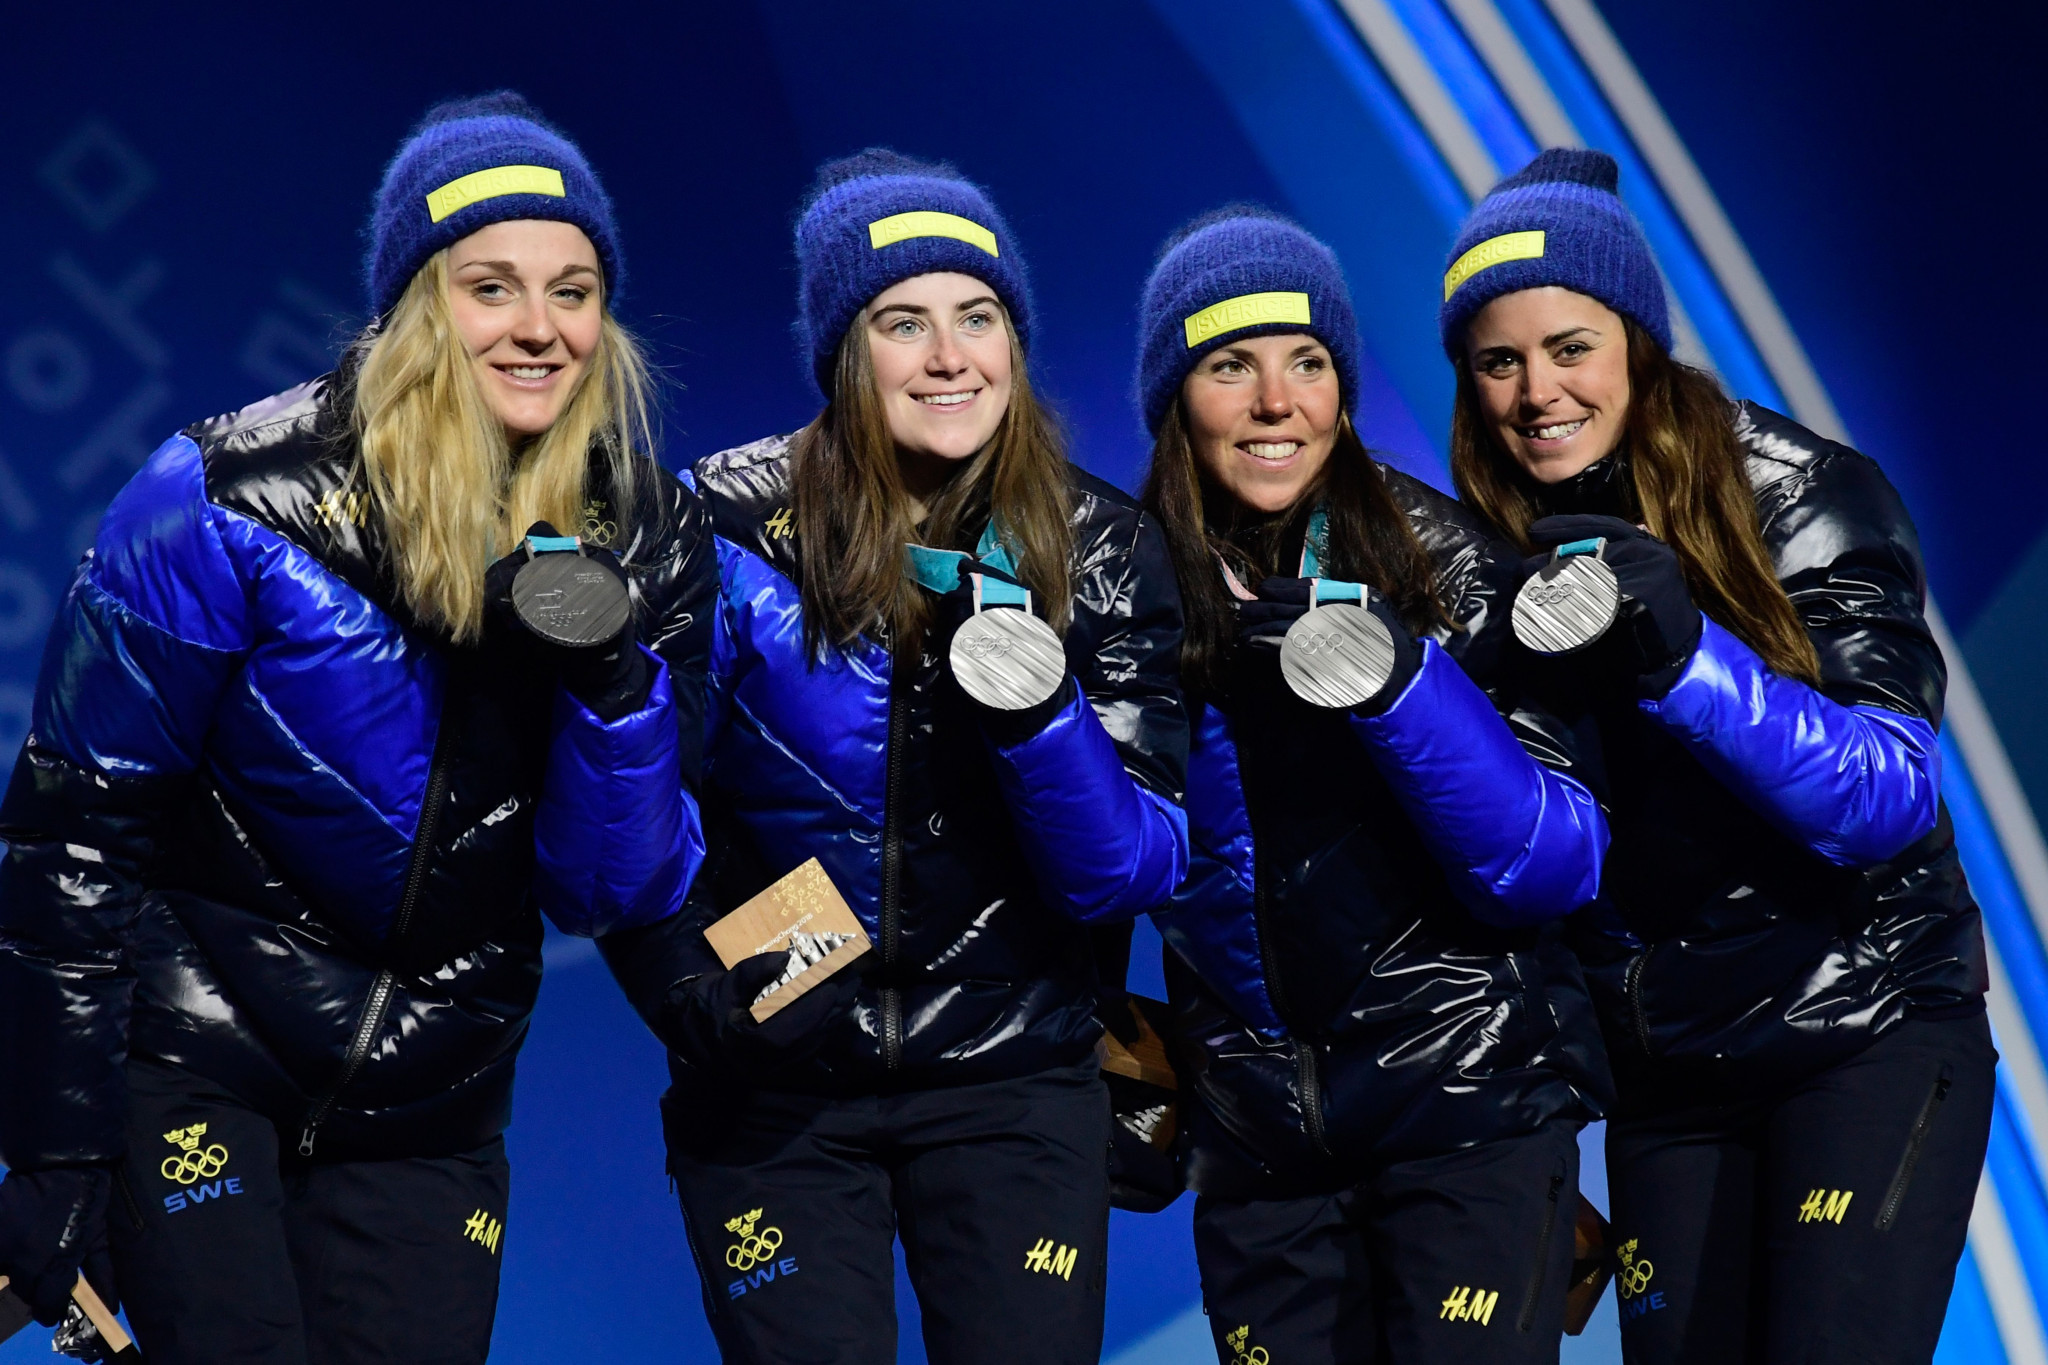 Ebba Andersson was part of the Swedish cross-country team that won silver at the Pyeongchang 2018 Winter Olympic Games ©Getty Images